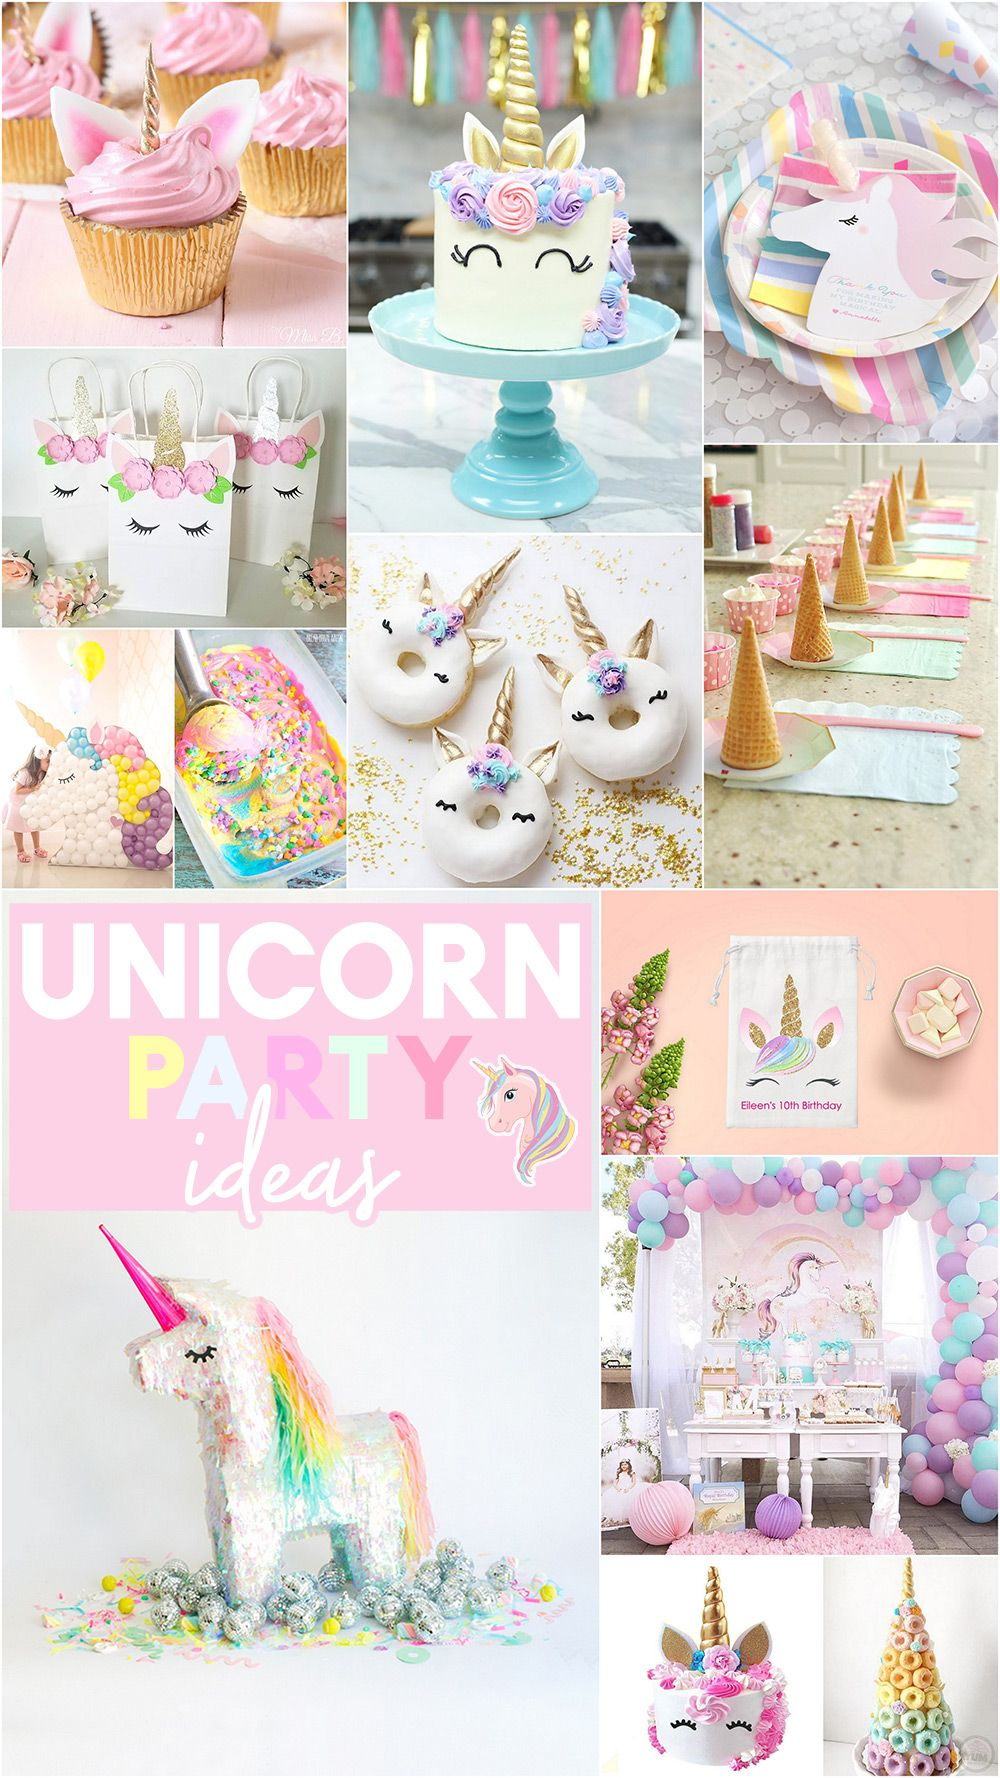 Unicorn Party Ideas Unicorn Desserts And Unicorn Party Decorations Unicorn Birthday Party Decorations Unicorn Party Food Unicorn Party